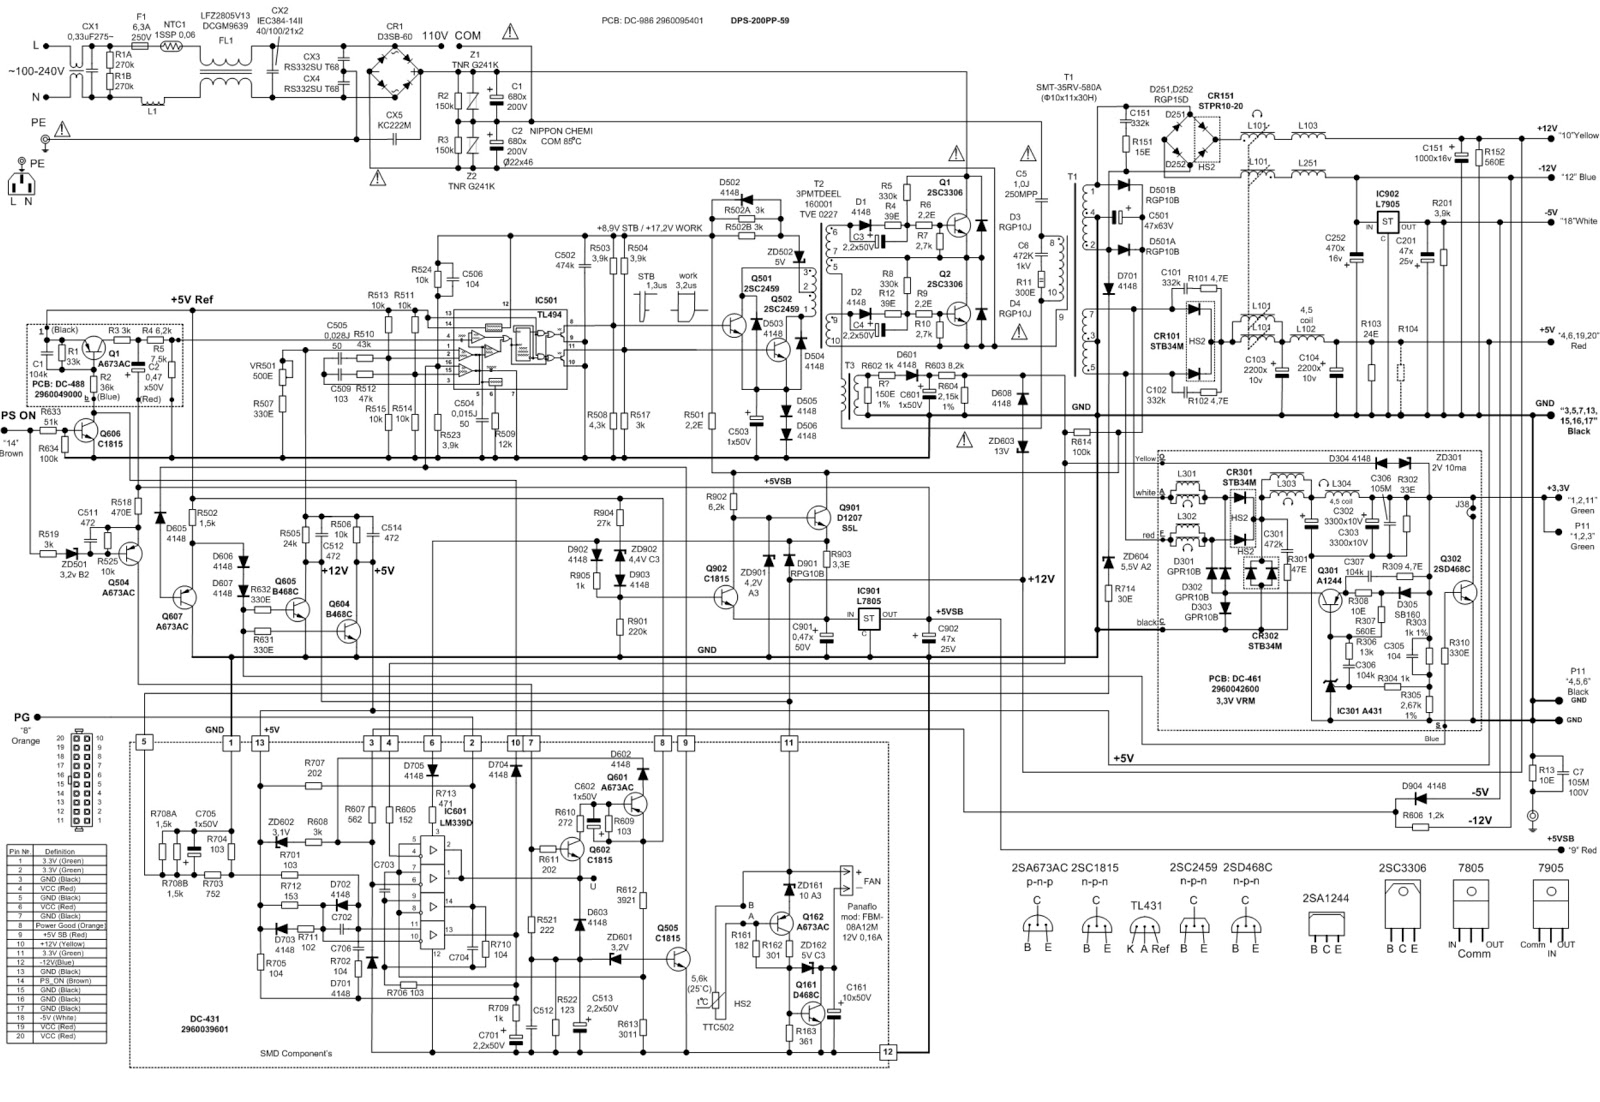 Luxury Atx Schematic Image - Electrical System Block Diagram ...